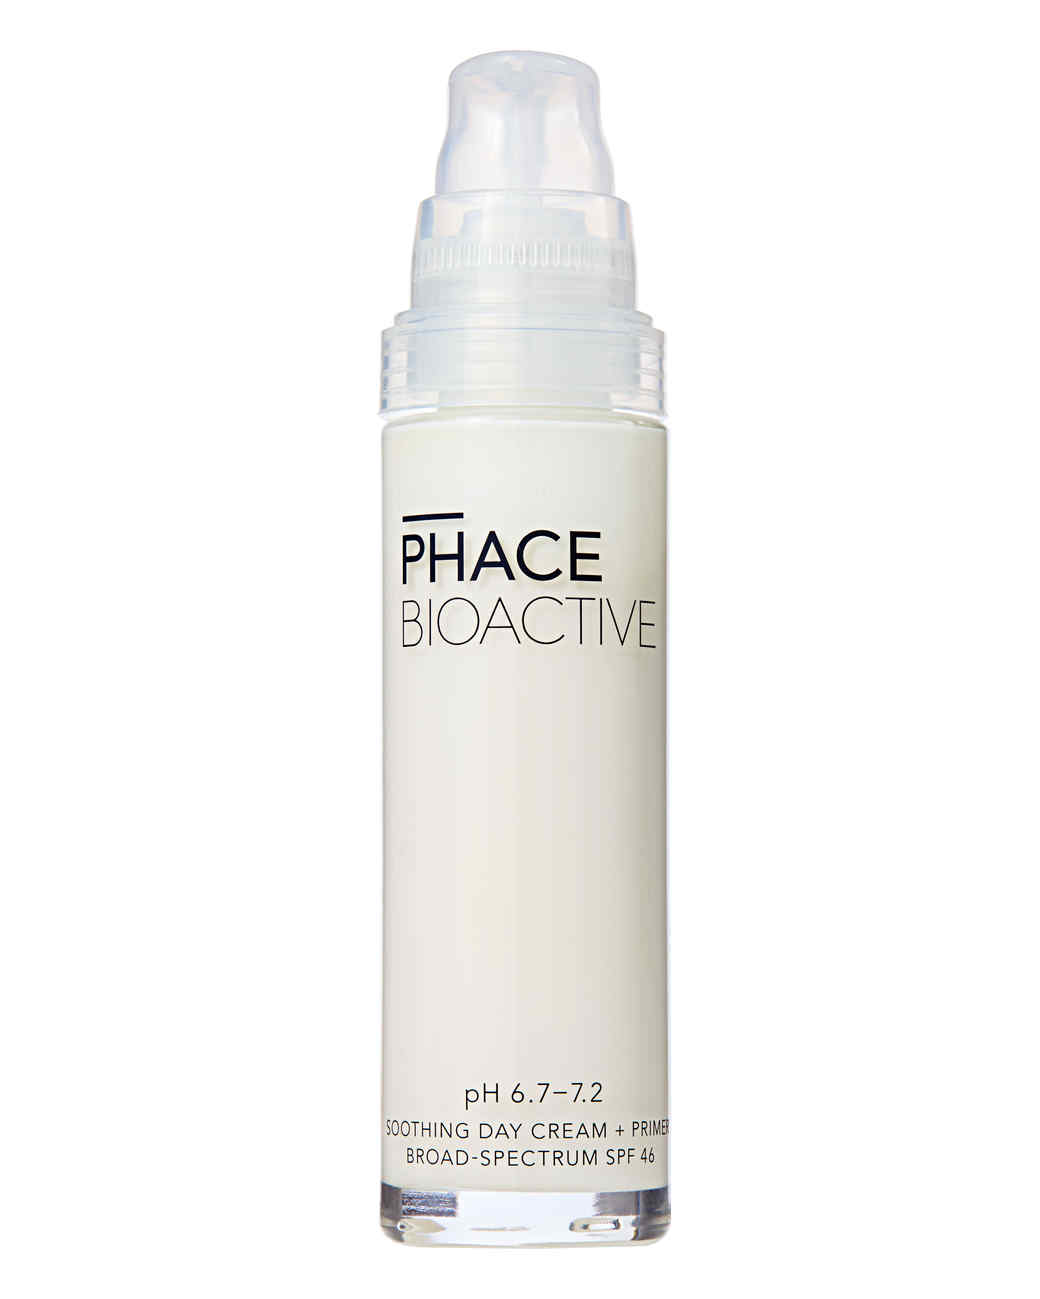 phace bioactive soothing cream